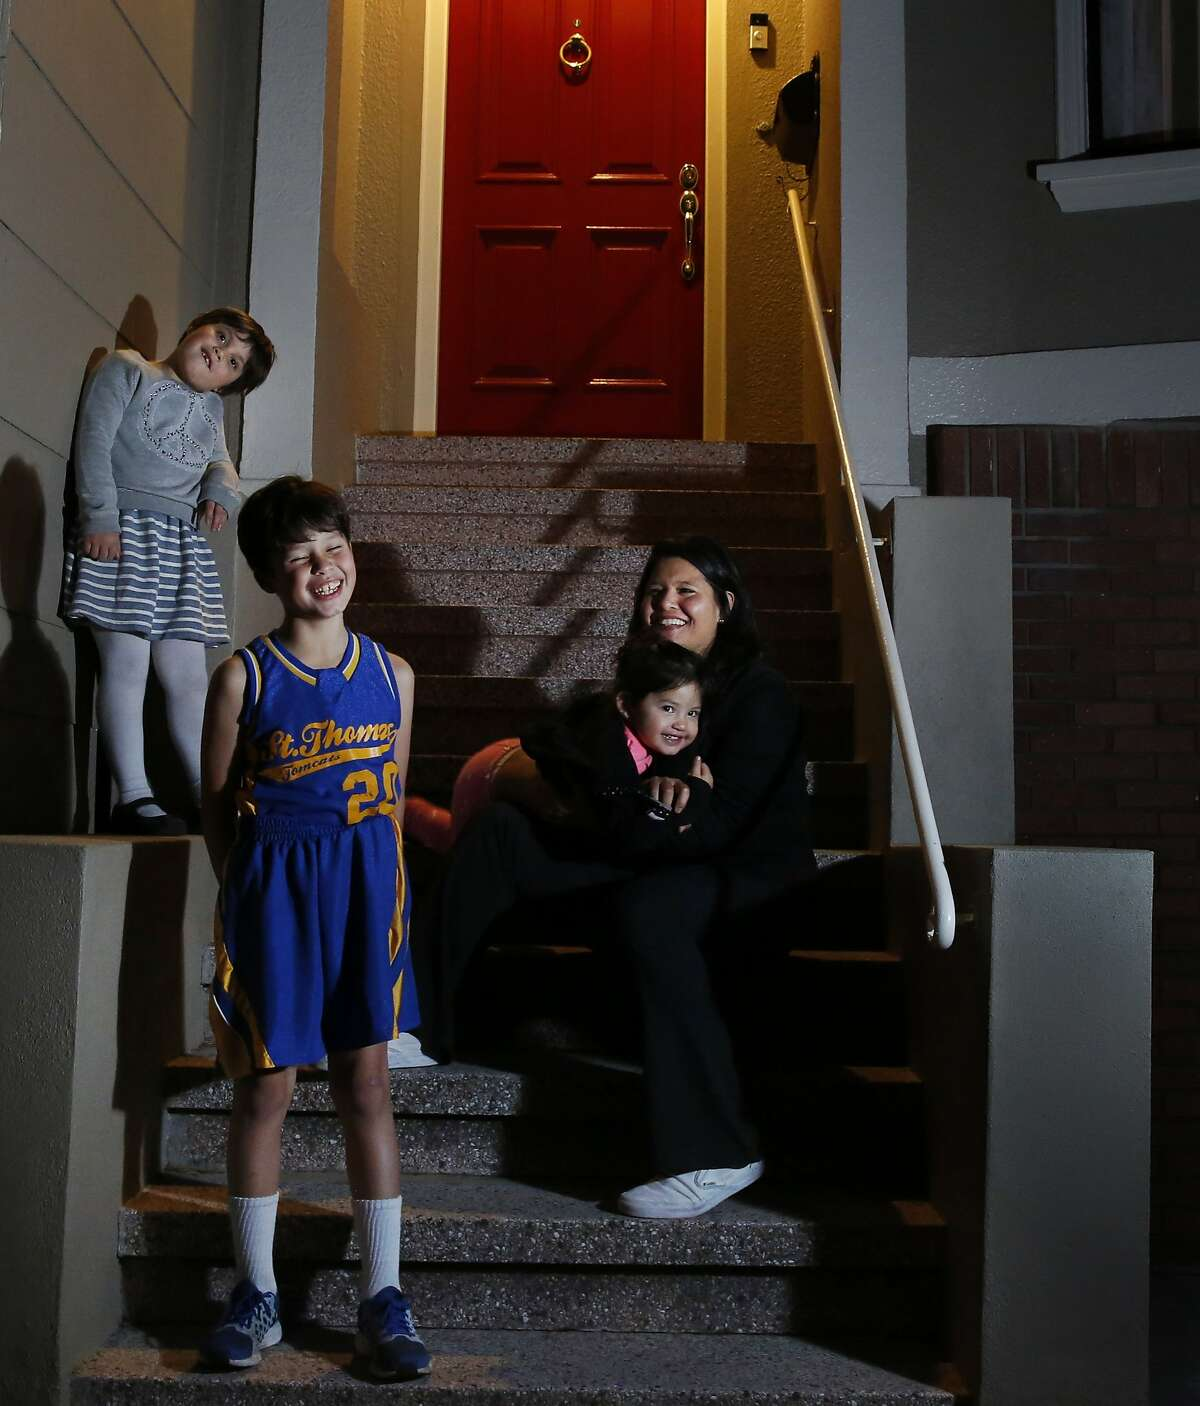 Marjan Philhour pictured with her three children Sophie, 6, Joey, 8, and Natalie, 2, Jan. 15, 2015 in San Francisco, Calif. Philhour is running for District 1 Supervisor in San Francisco. She often canvasses her neighborhood with the help of one or all of her three children.